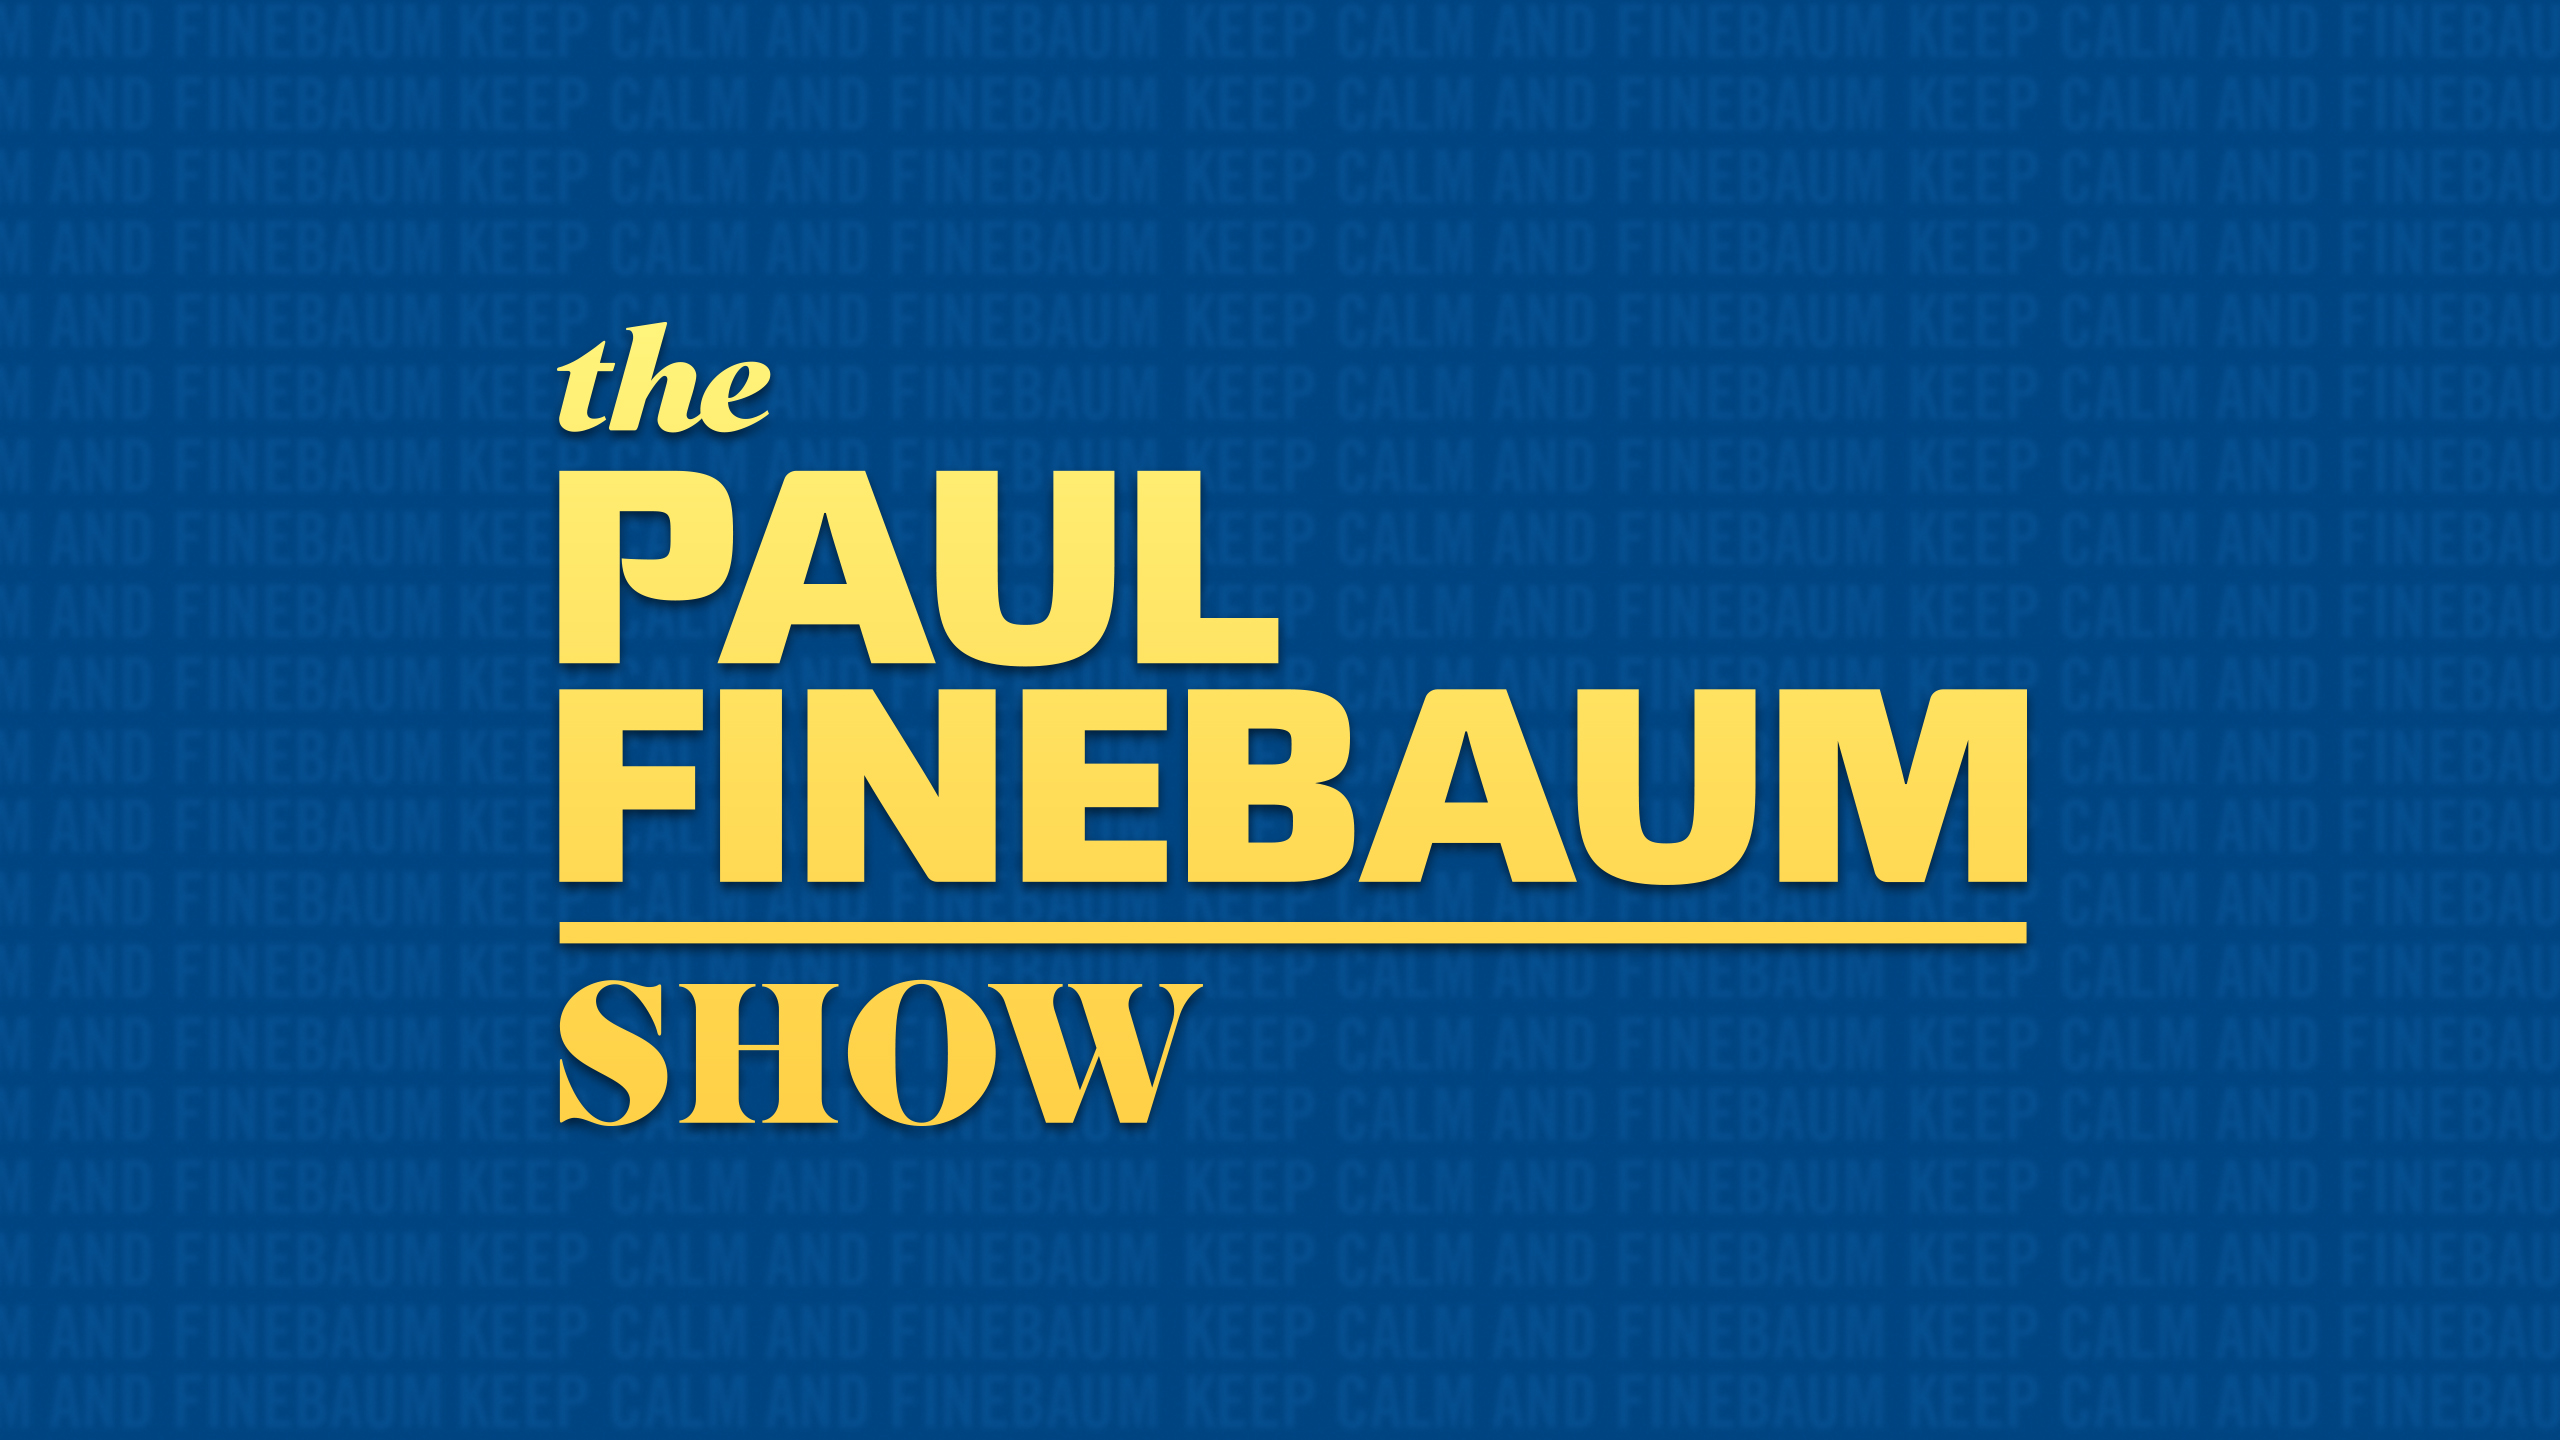 Wed, 11/21 - The Paul Finebaum Show